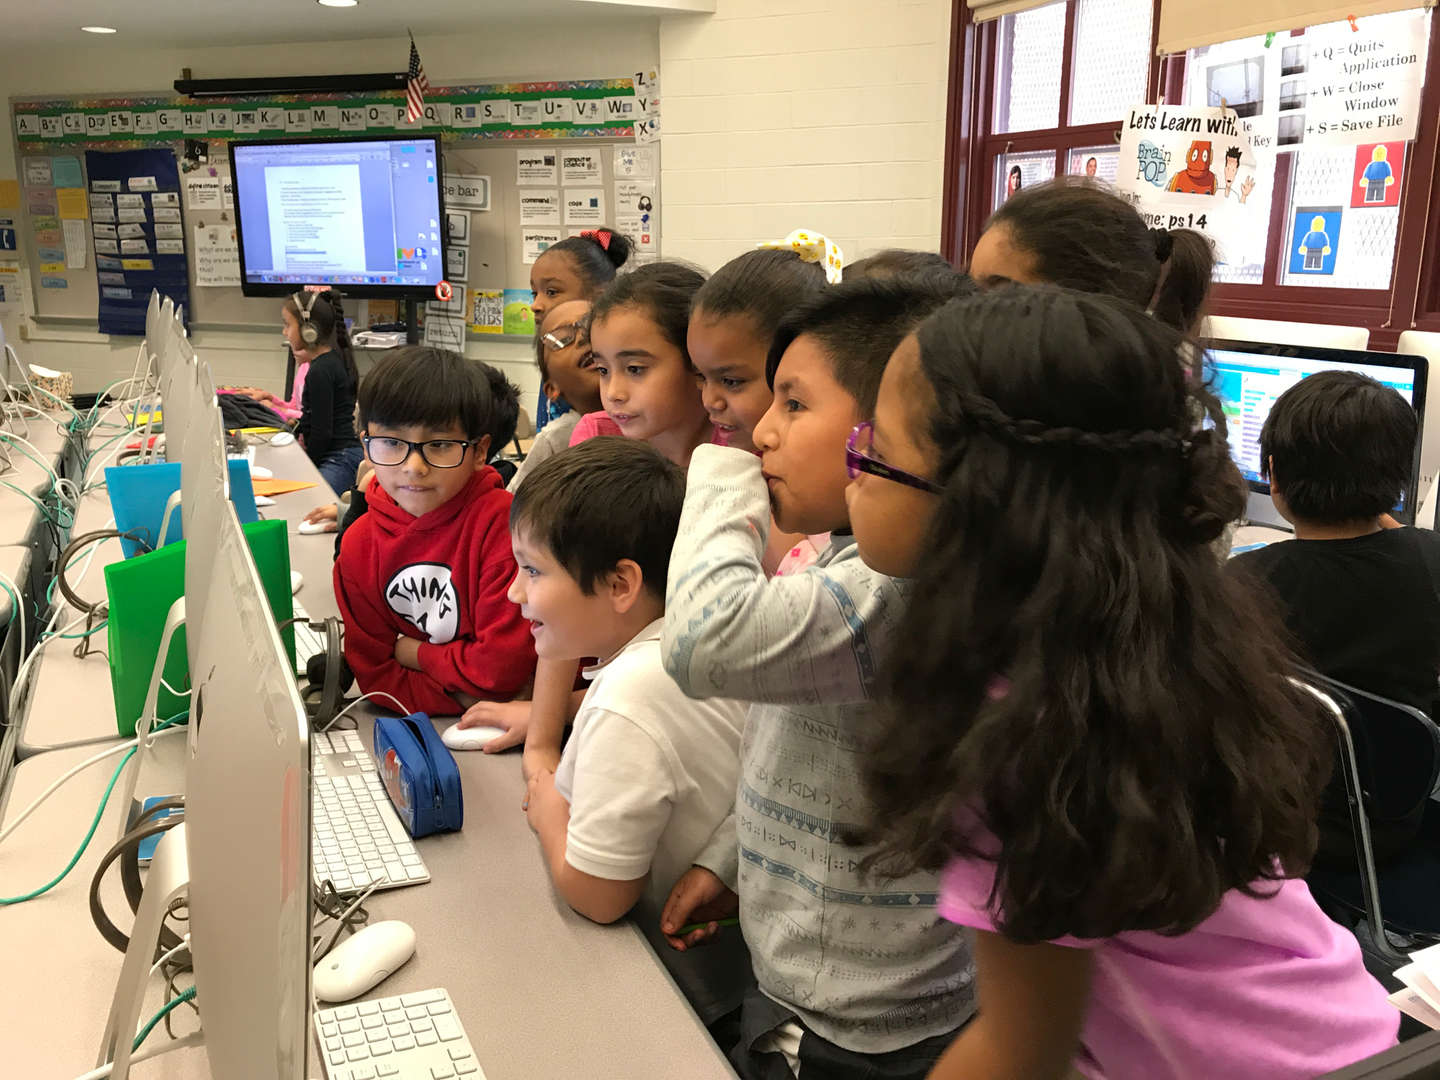 a group of kids gathered around a computer station observing the screen